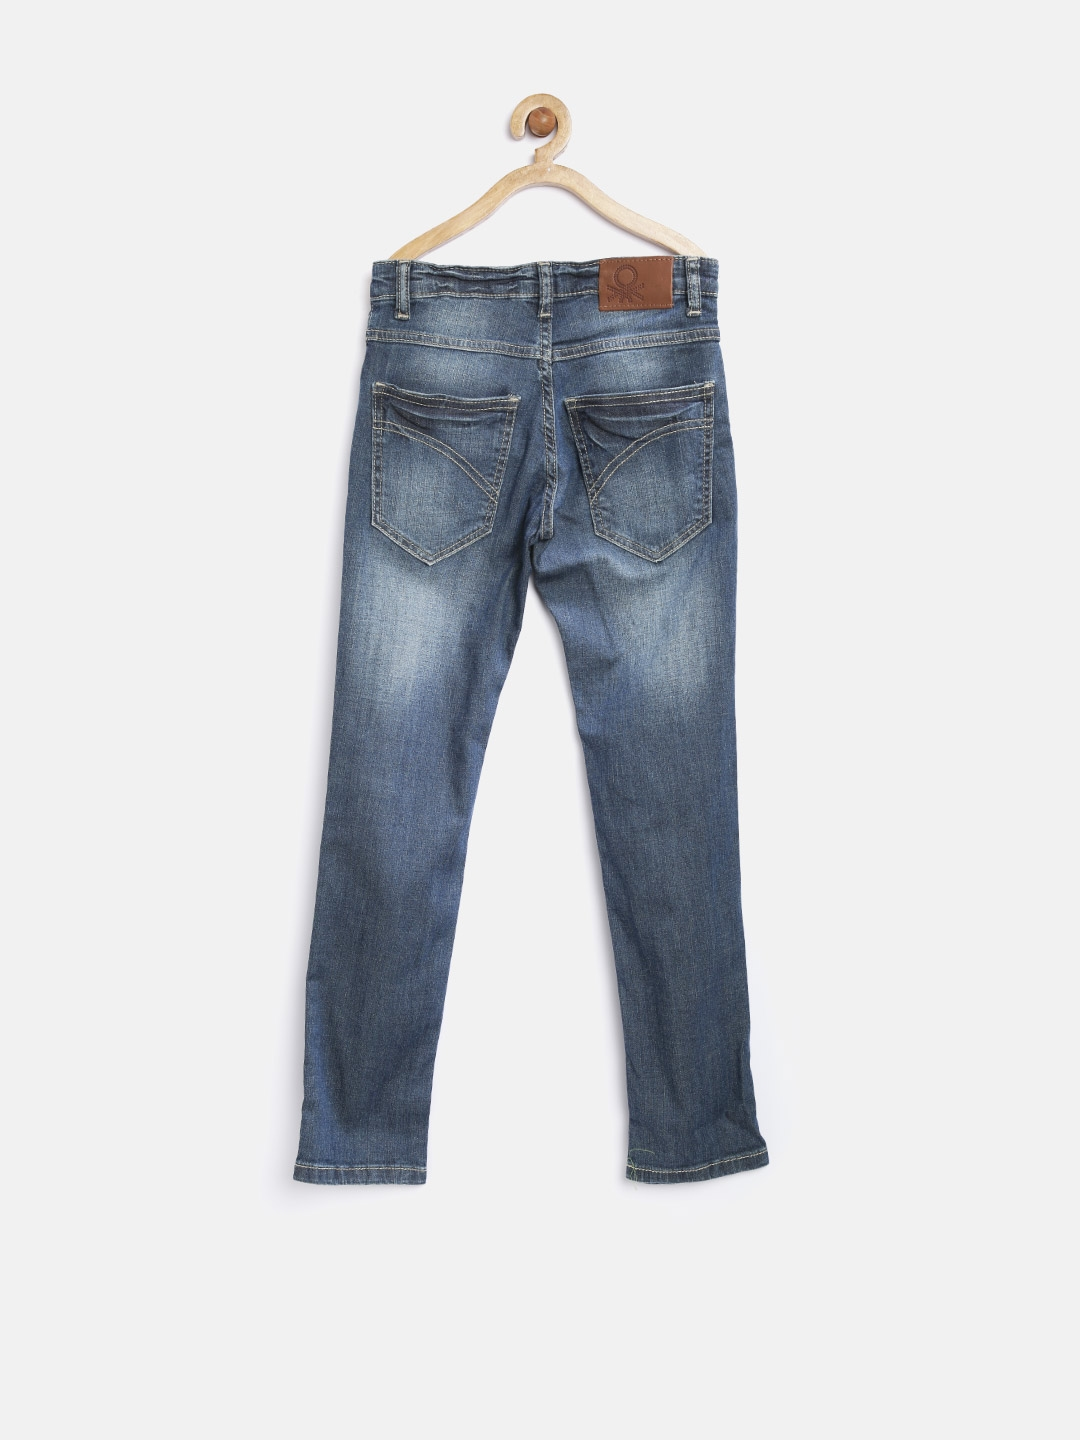 f09126d87ea9 Buy United Colors Of Benetton Boys Blue Washed Skinny Fit Jeans ...